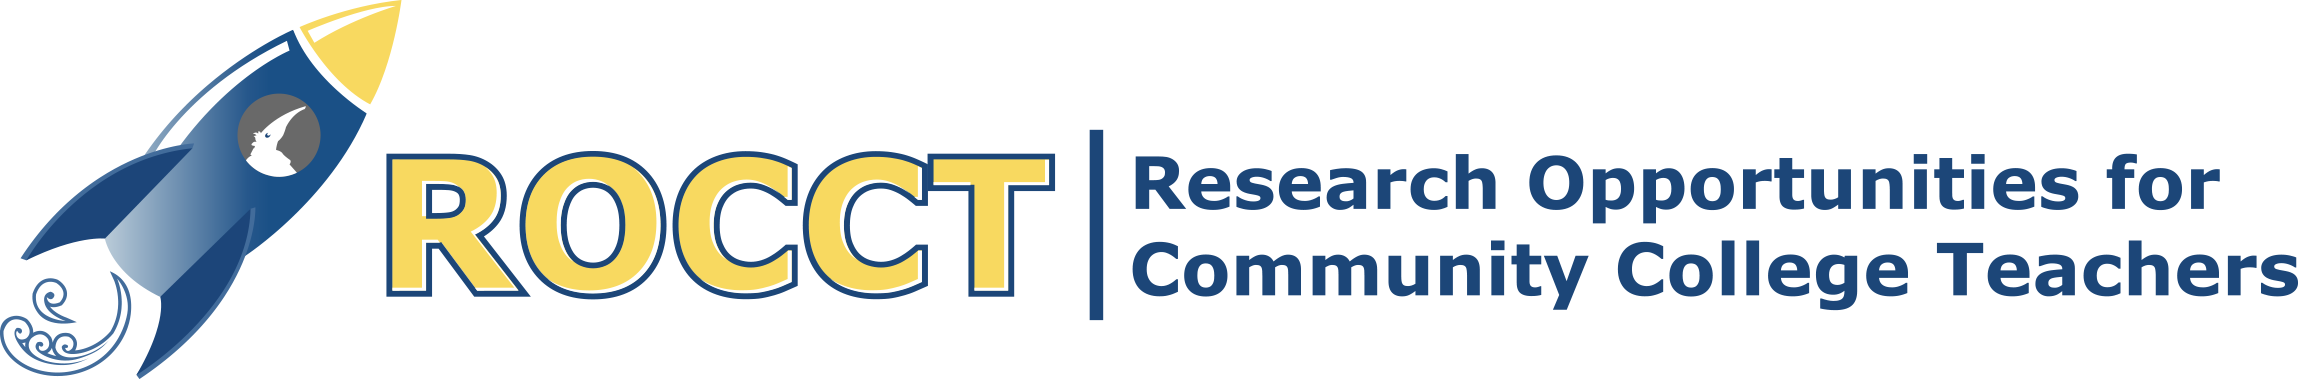 ROCCT: Research Opportunities For Community College Teachers